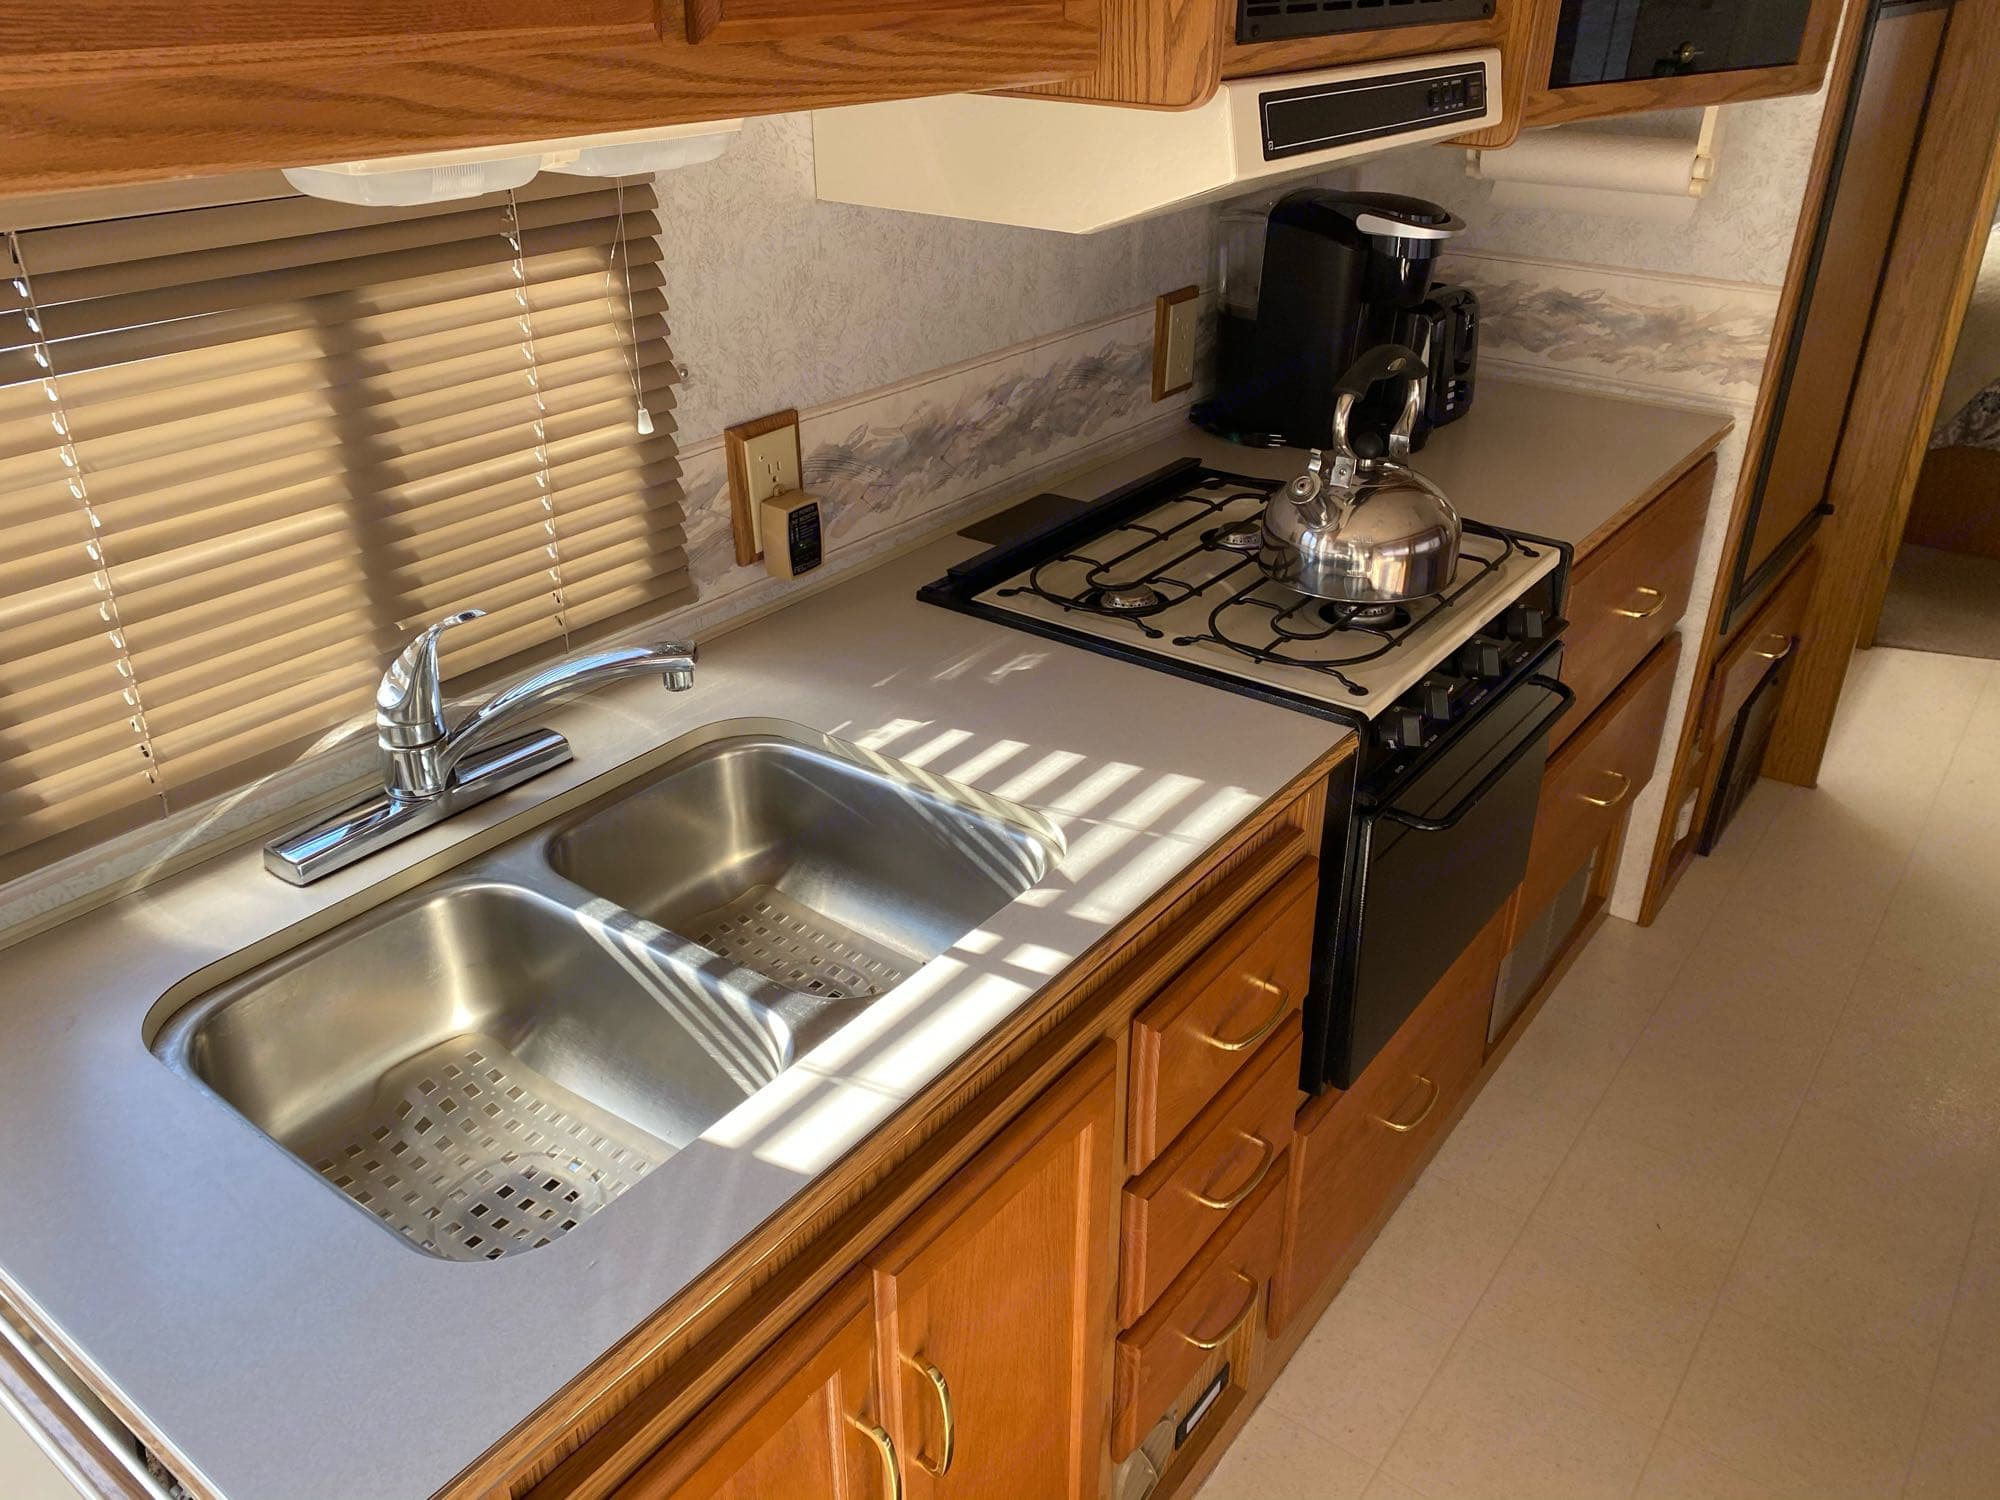 stainless steel sink with 3 burner stove, oven and kureg coffee maker. Itasca Spirit 2000